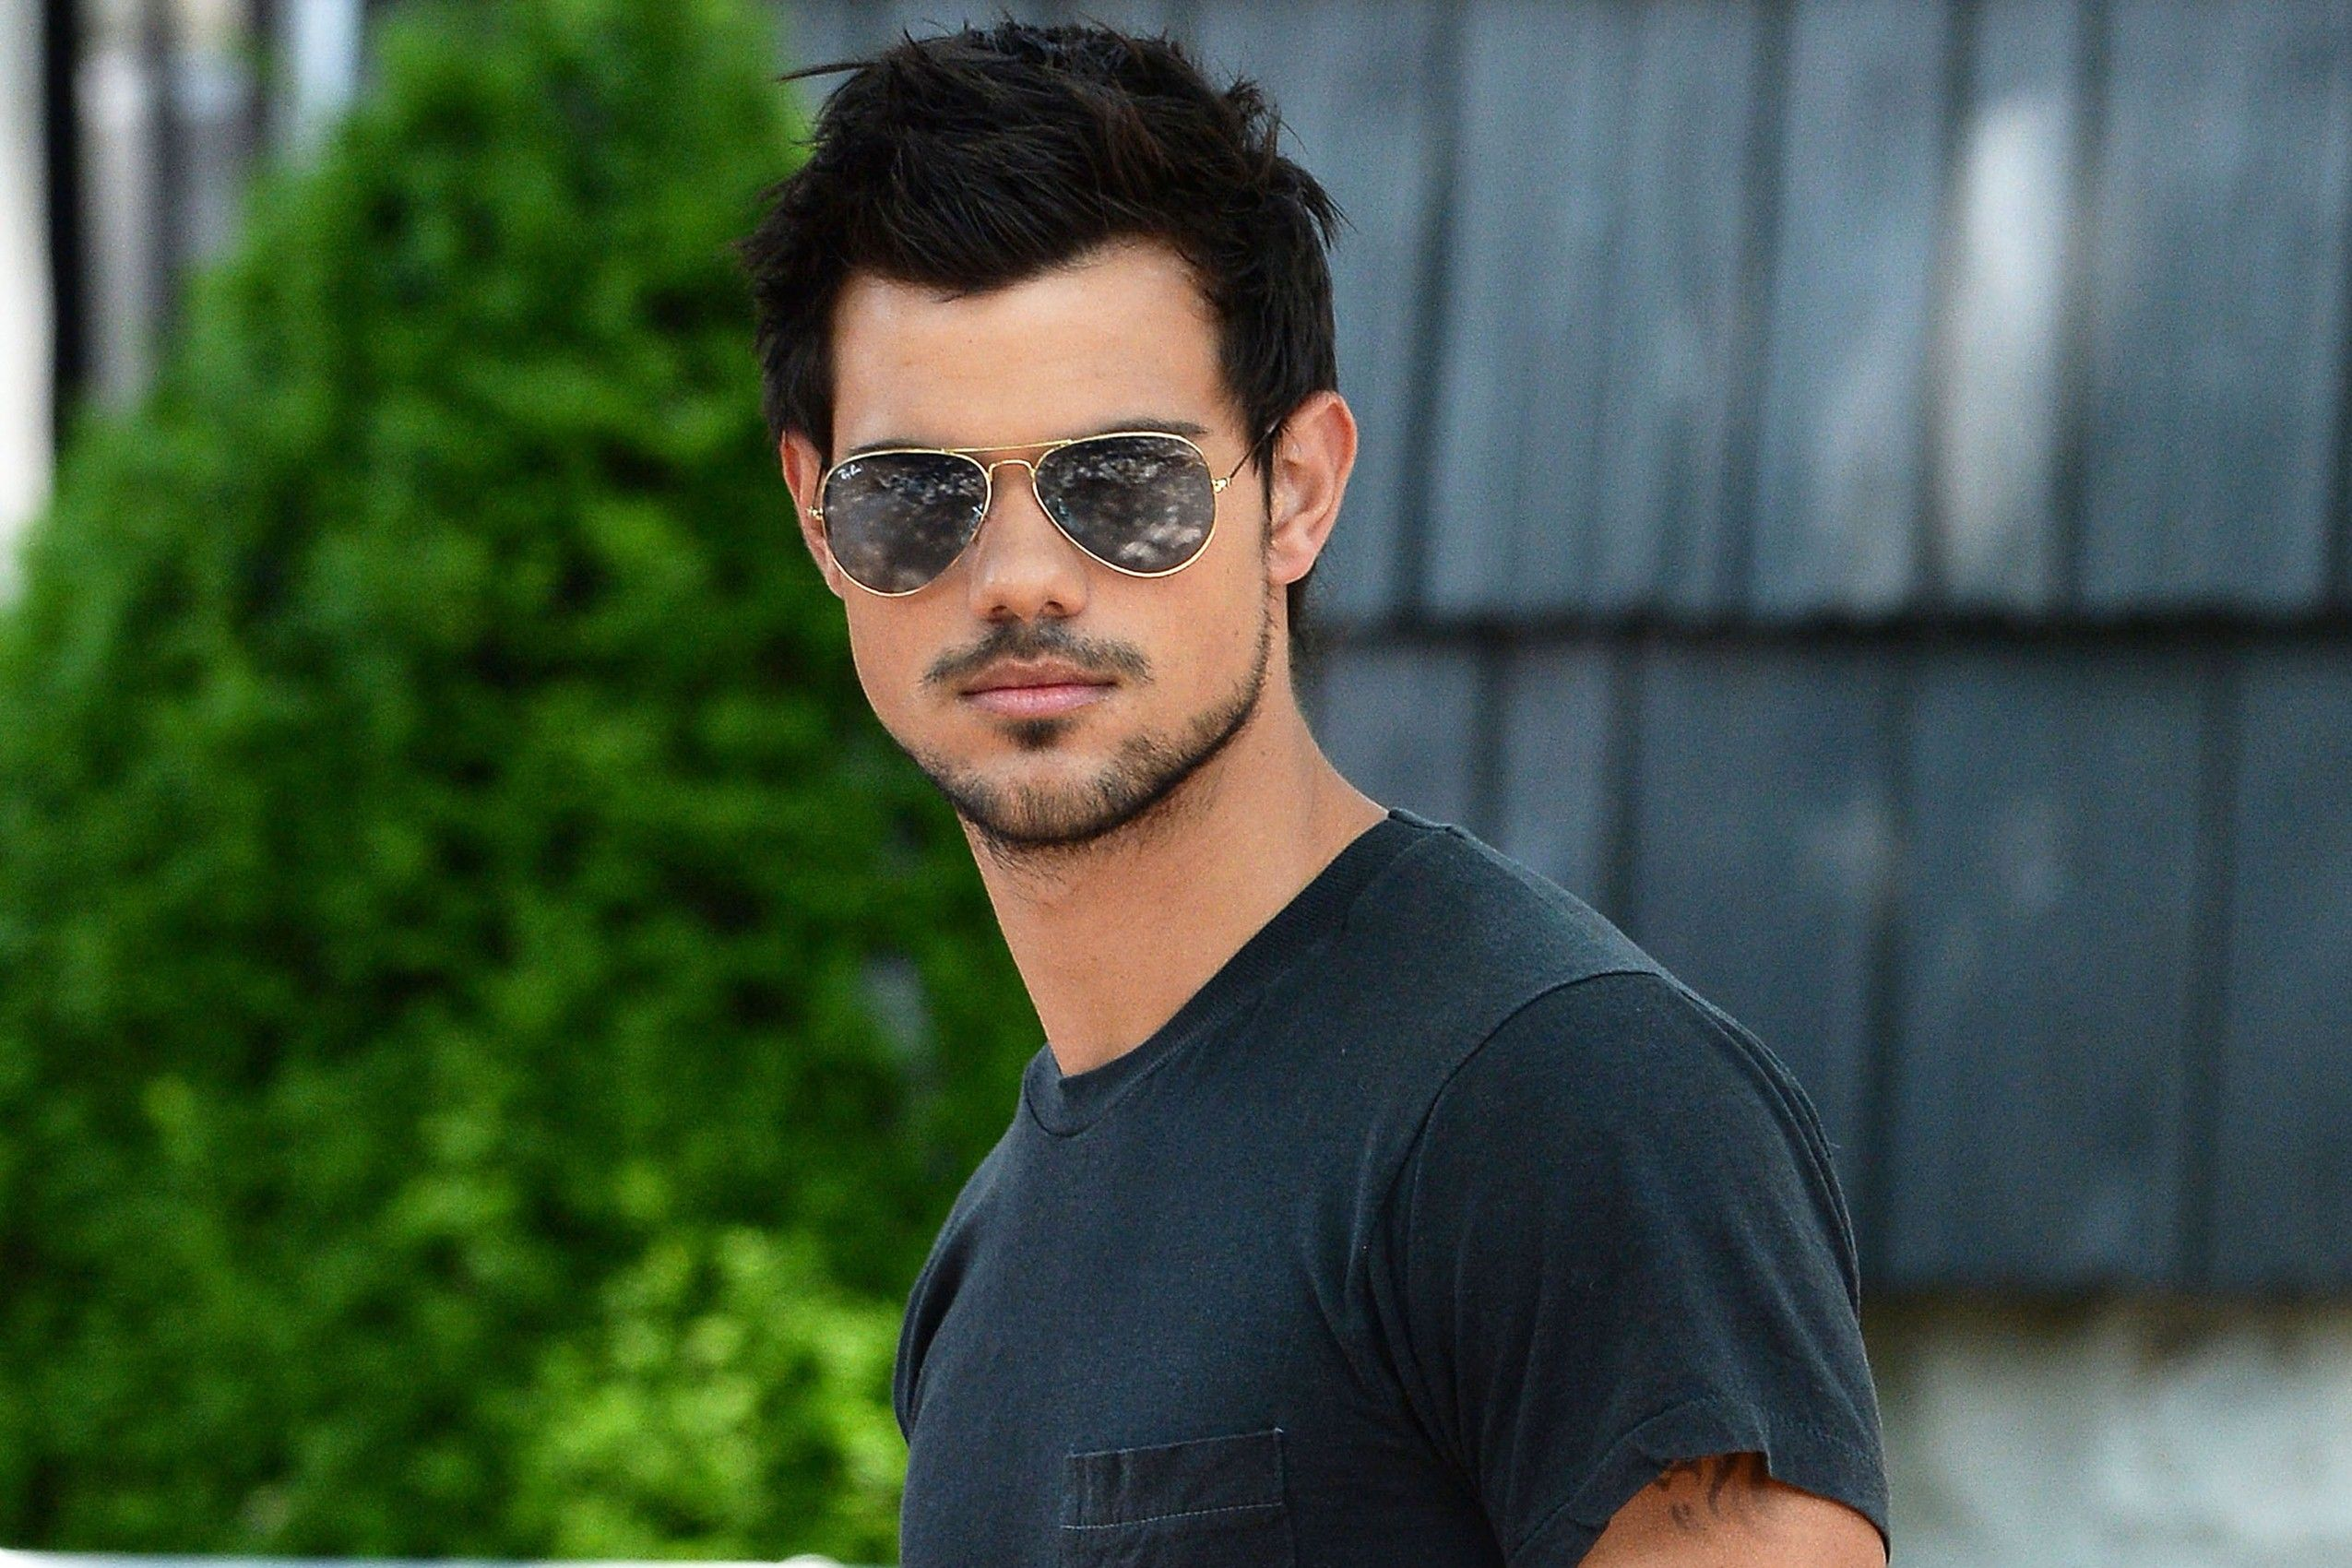 taylor lautner cuckootaylor lautner 2016, taylor lautner films, taylor lautner vk, taylor lautner and billie lourd, taylor lautner girlfriend, taylor lautner now, taylor lautner wiki, taylor lautner фильмы, taylor lautner 2016 потолстел, taylor lautner instagram, taylor lautner биография, taylor lautner gif, taylor lautner filme, taylor lautner movie, taylor lautner tattoo, taylor lautner filmi, taylor lautner boyu, taylor lautner cuckoo, taylor lautner net worth, taylor lautner kinopoisk